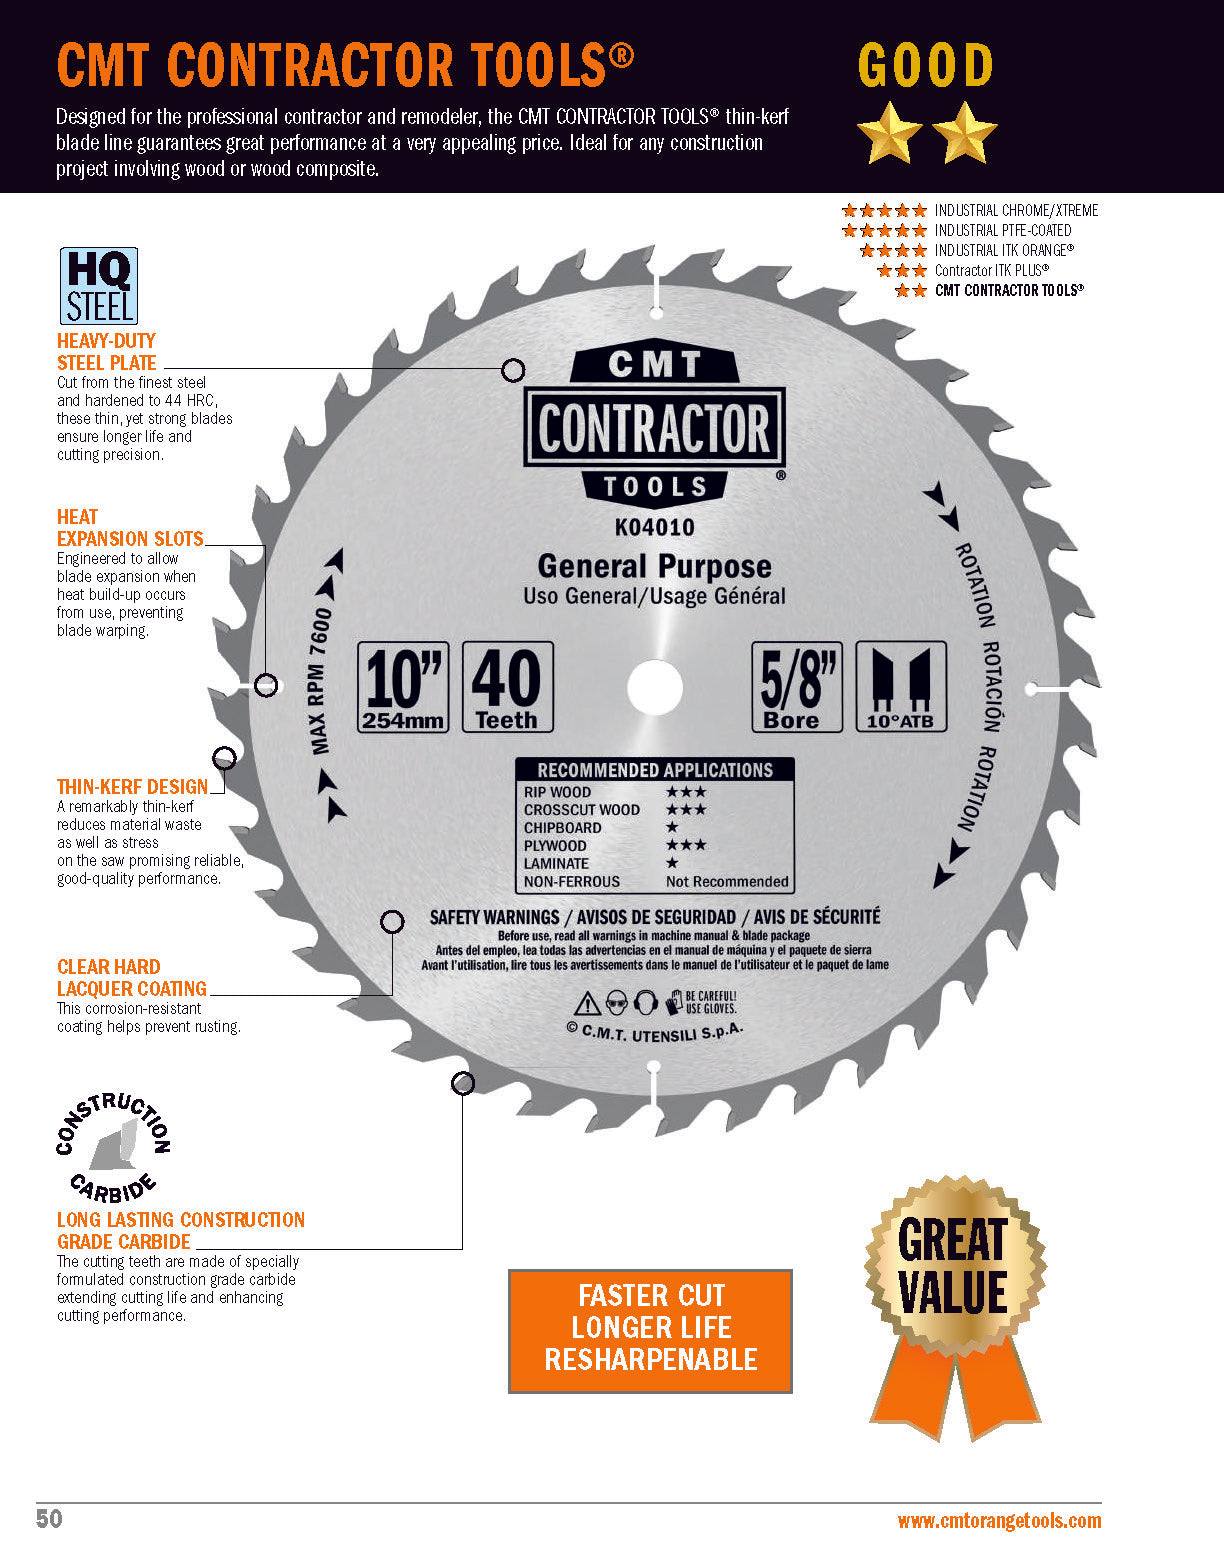 Features of CMT Contractor Tools Saw Blade